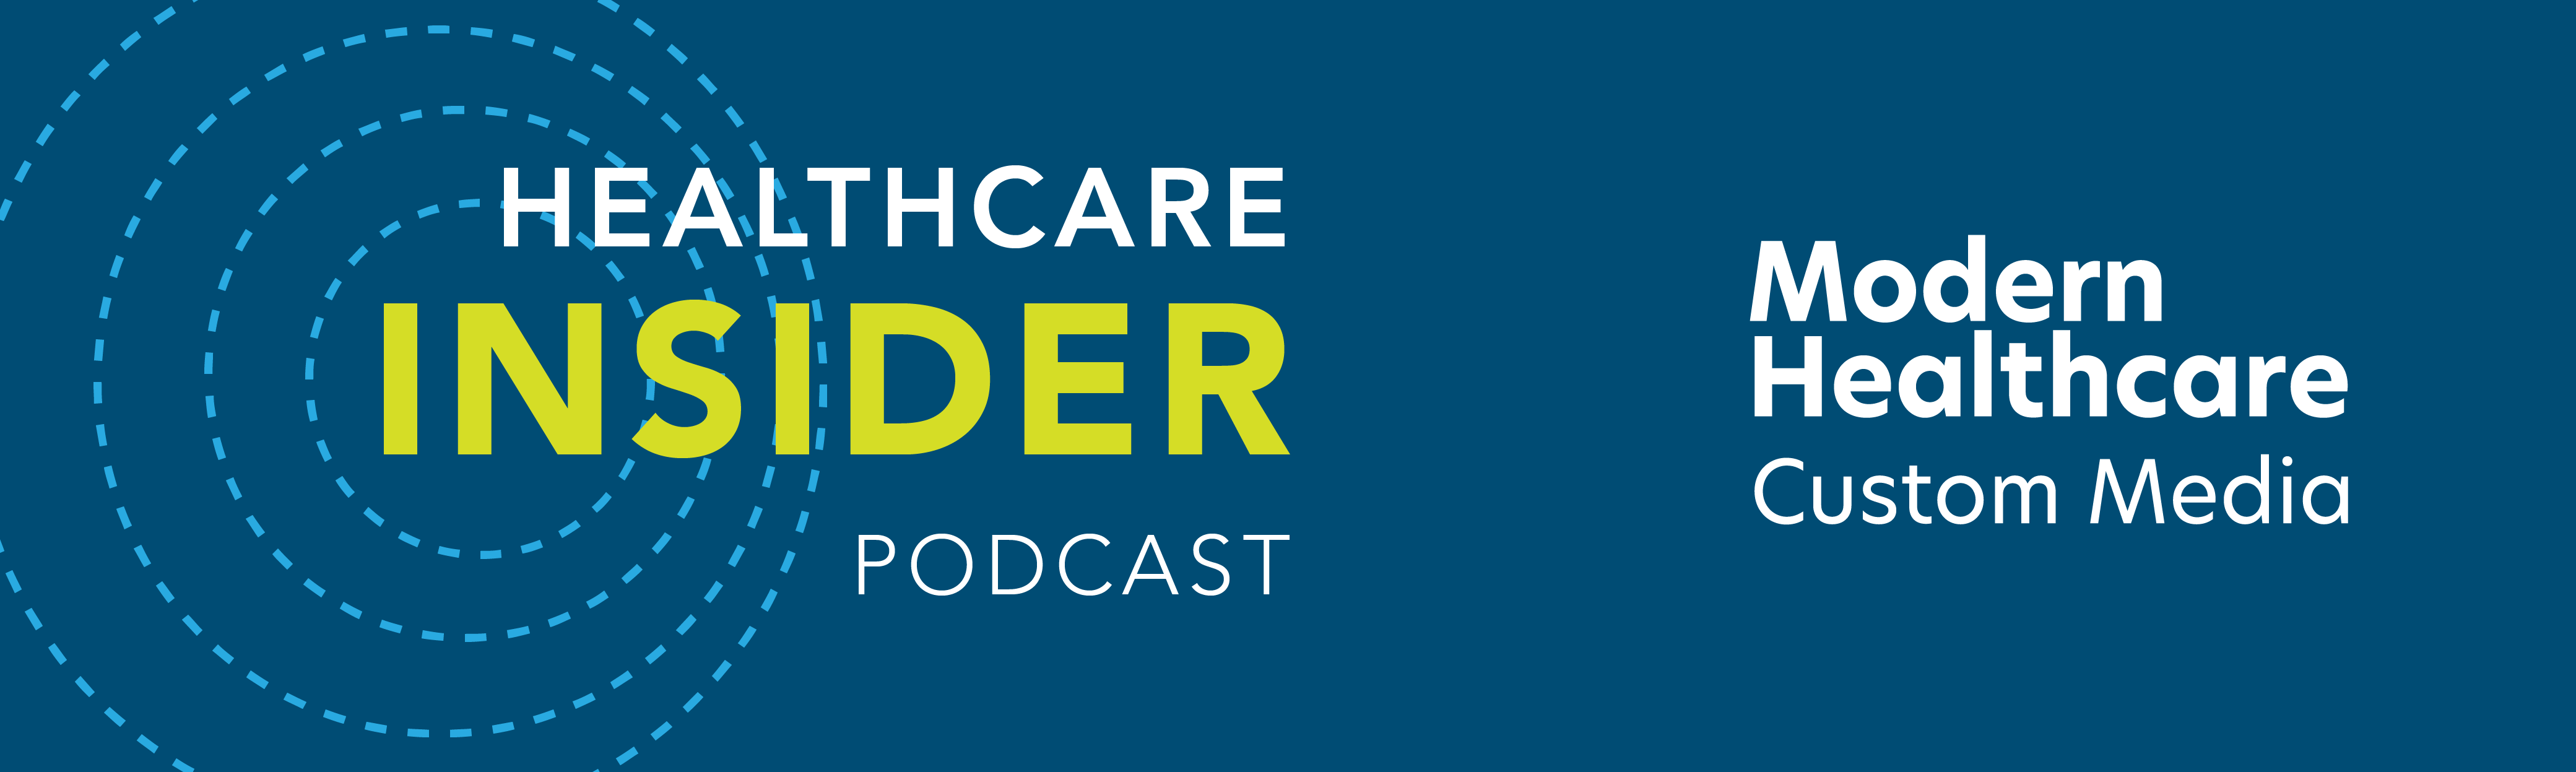 healthcare insider podcast banner image web